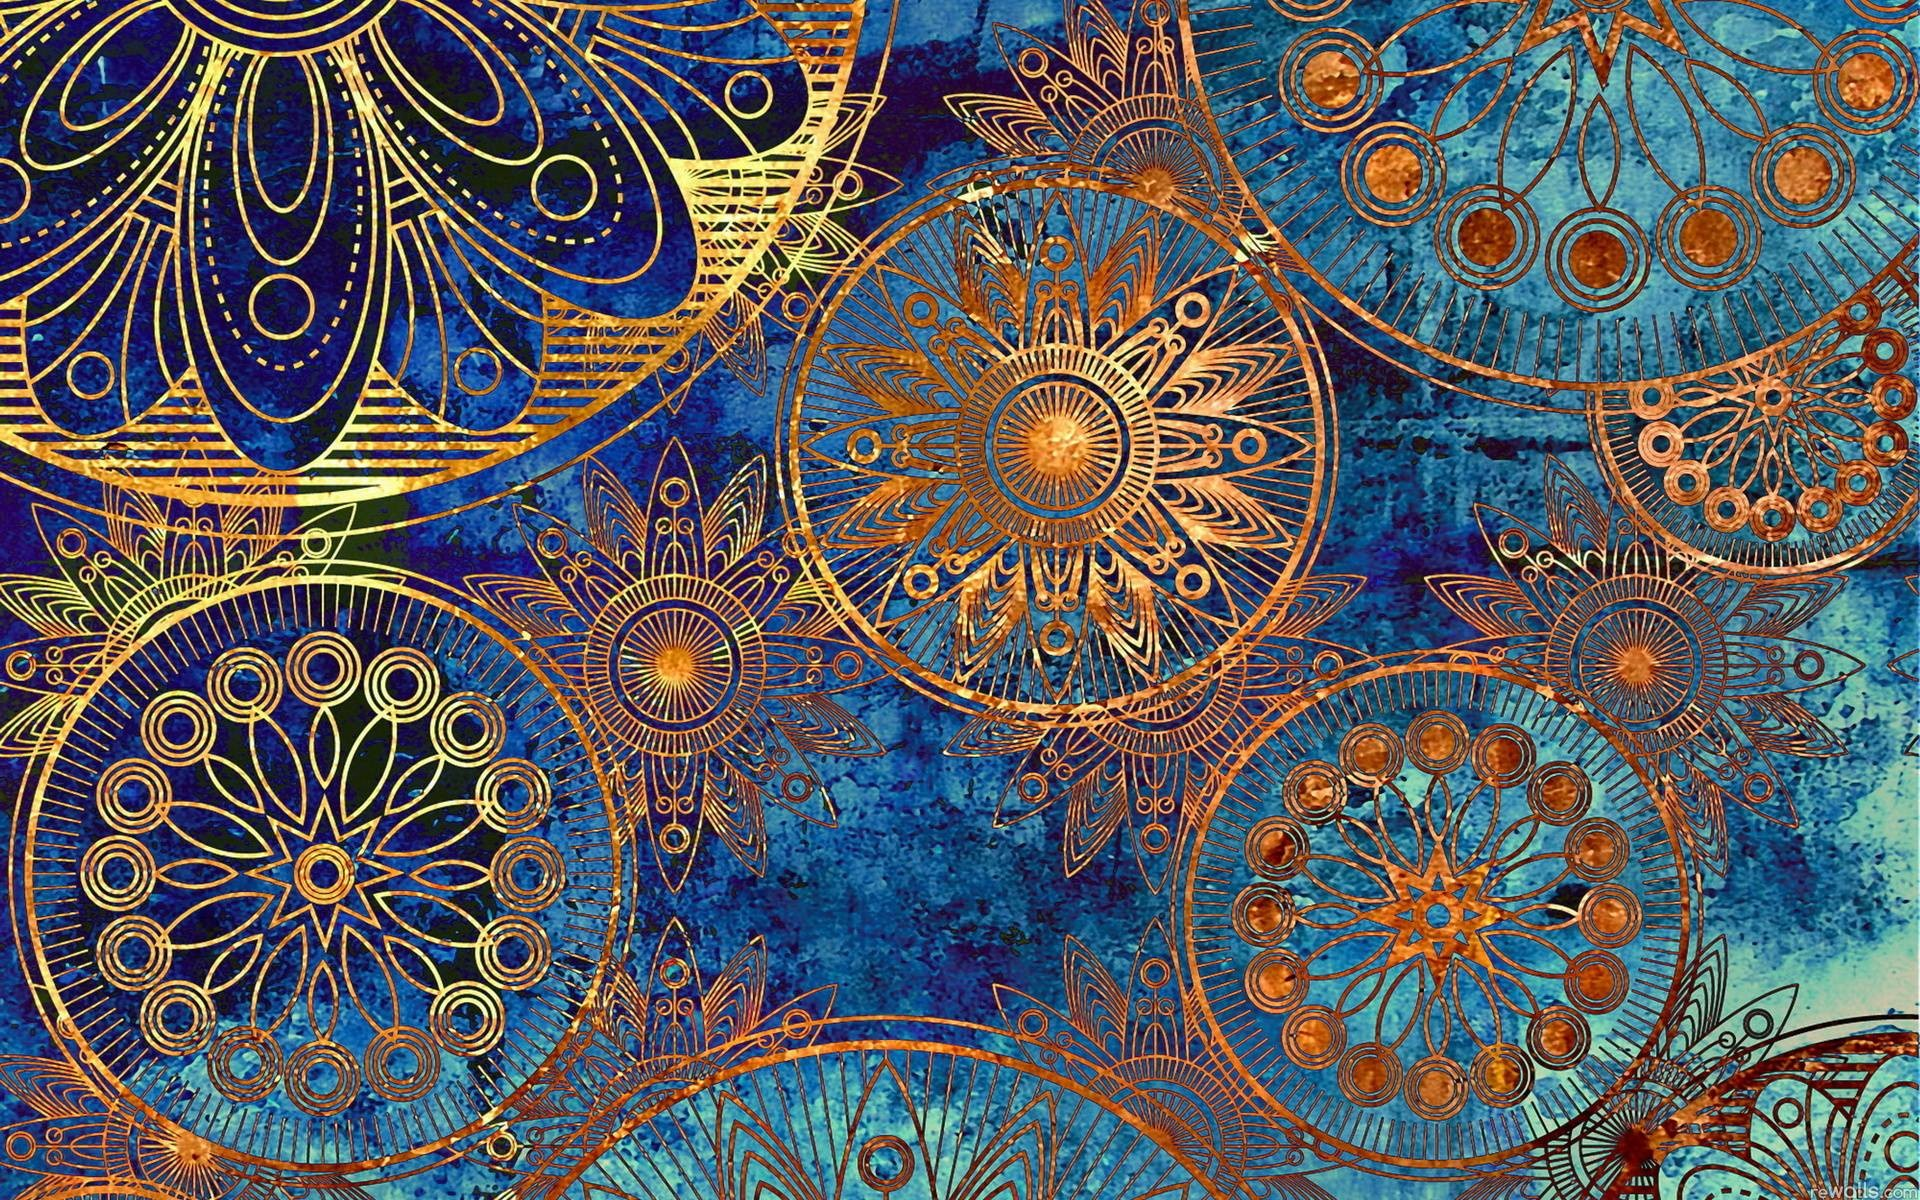 1920x1200 Vintage Drawings on Blue Background | Background and Texture